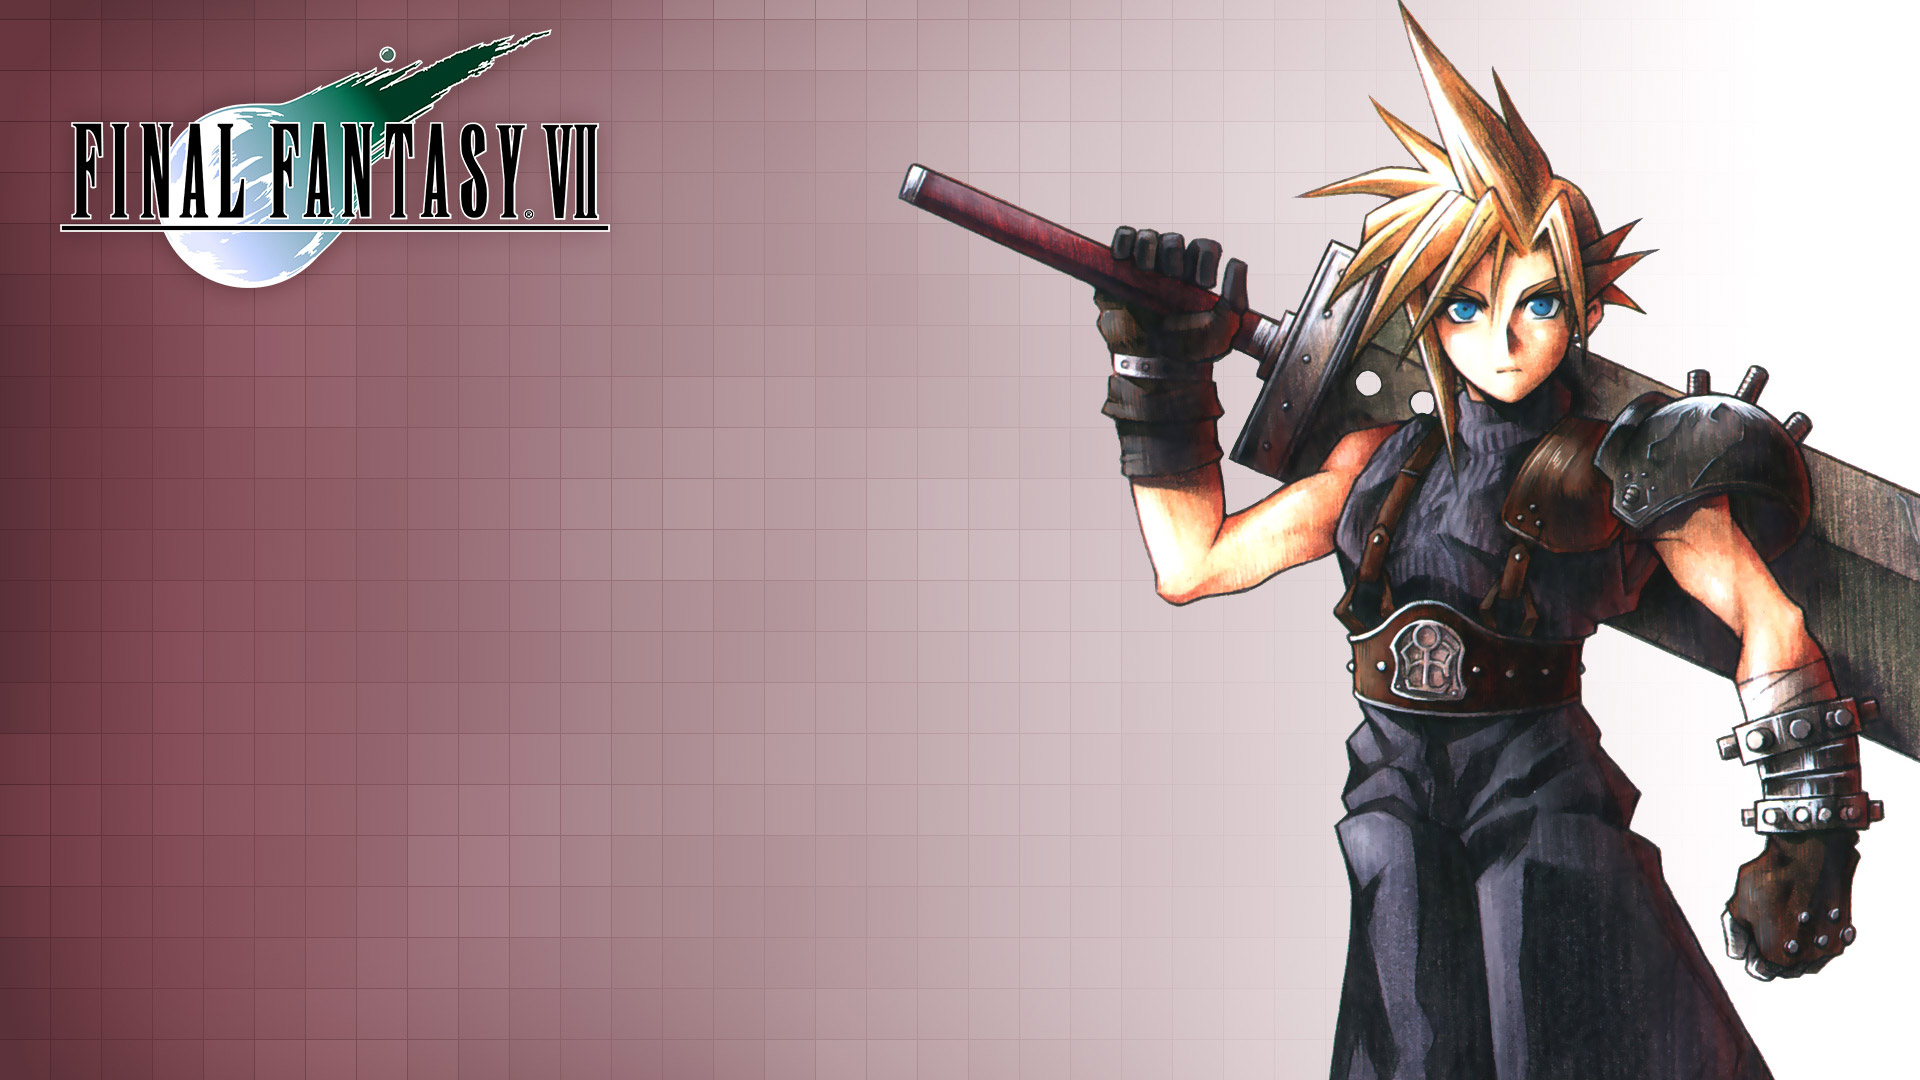 Free Final Fantasy VII Wallpaper in 1920x1080